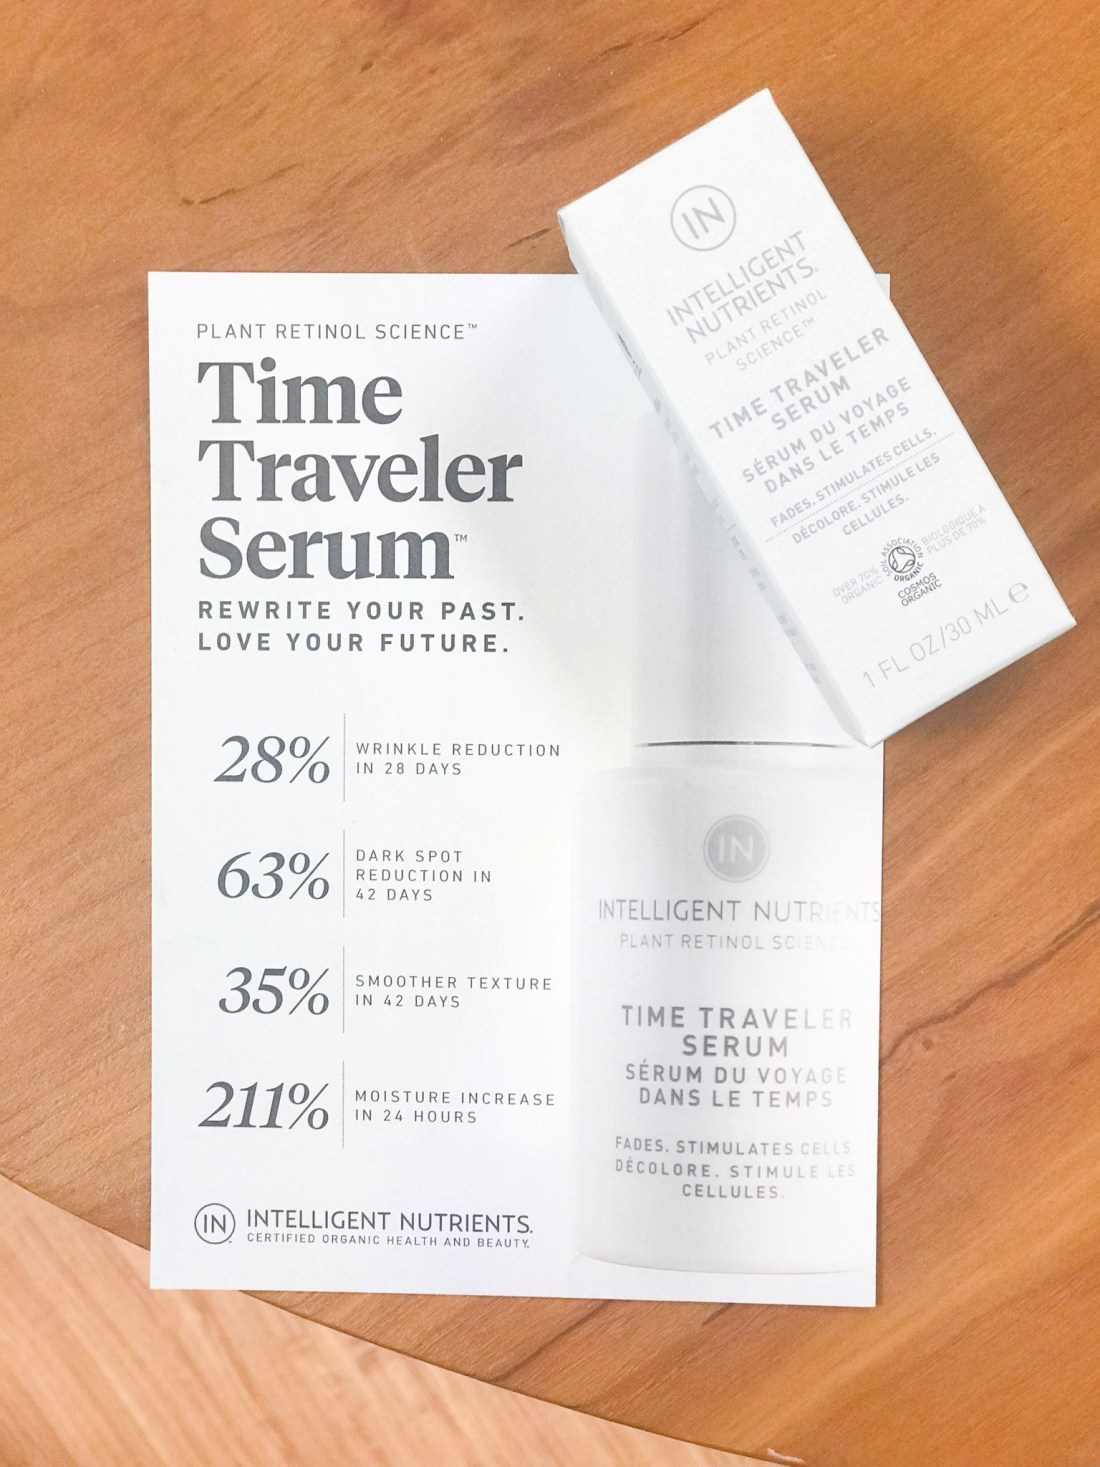 Time Traveler Serum